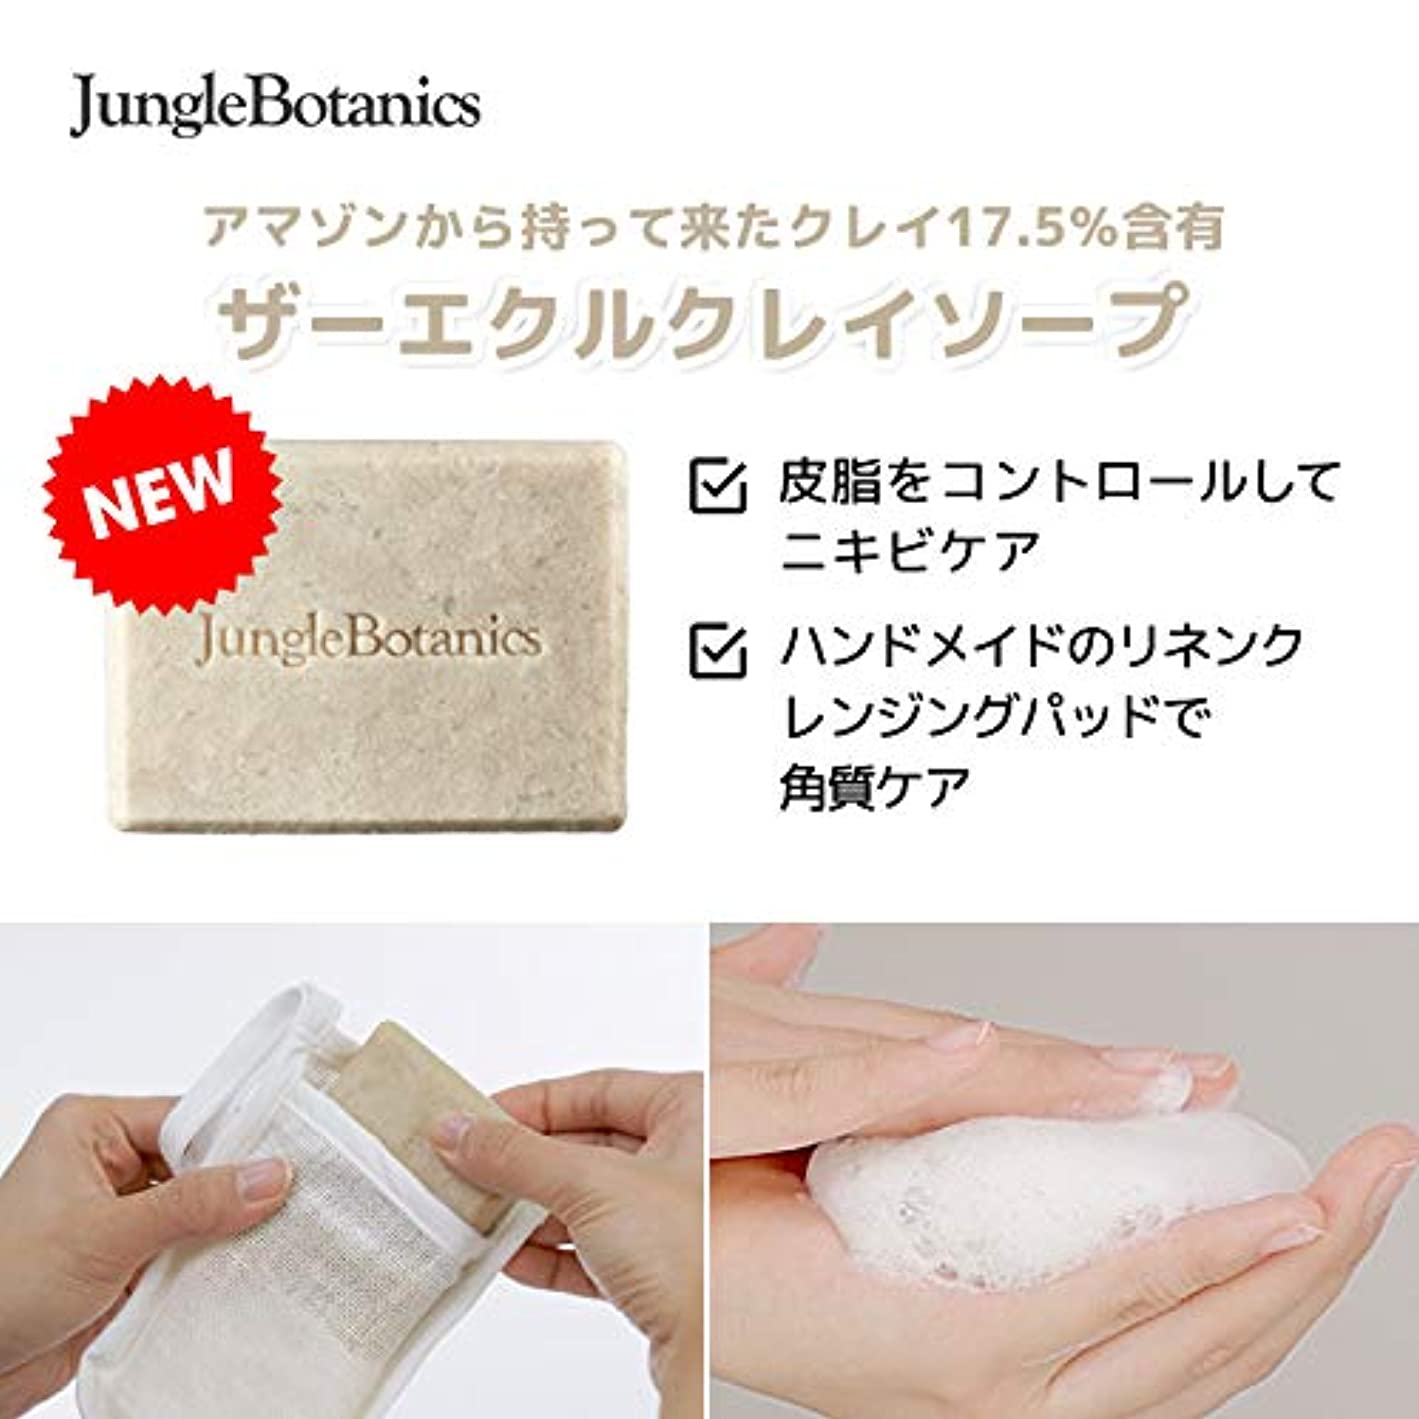 [JUNGLE BOTANICS] ザーエクルクレイソープ110g, [JUNGLE BOTANICS] The Ecru Clay Soap 110g [並行輸入品] …